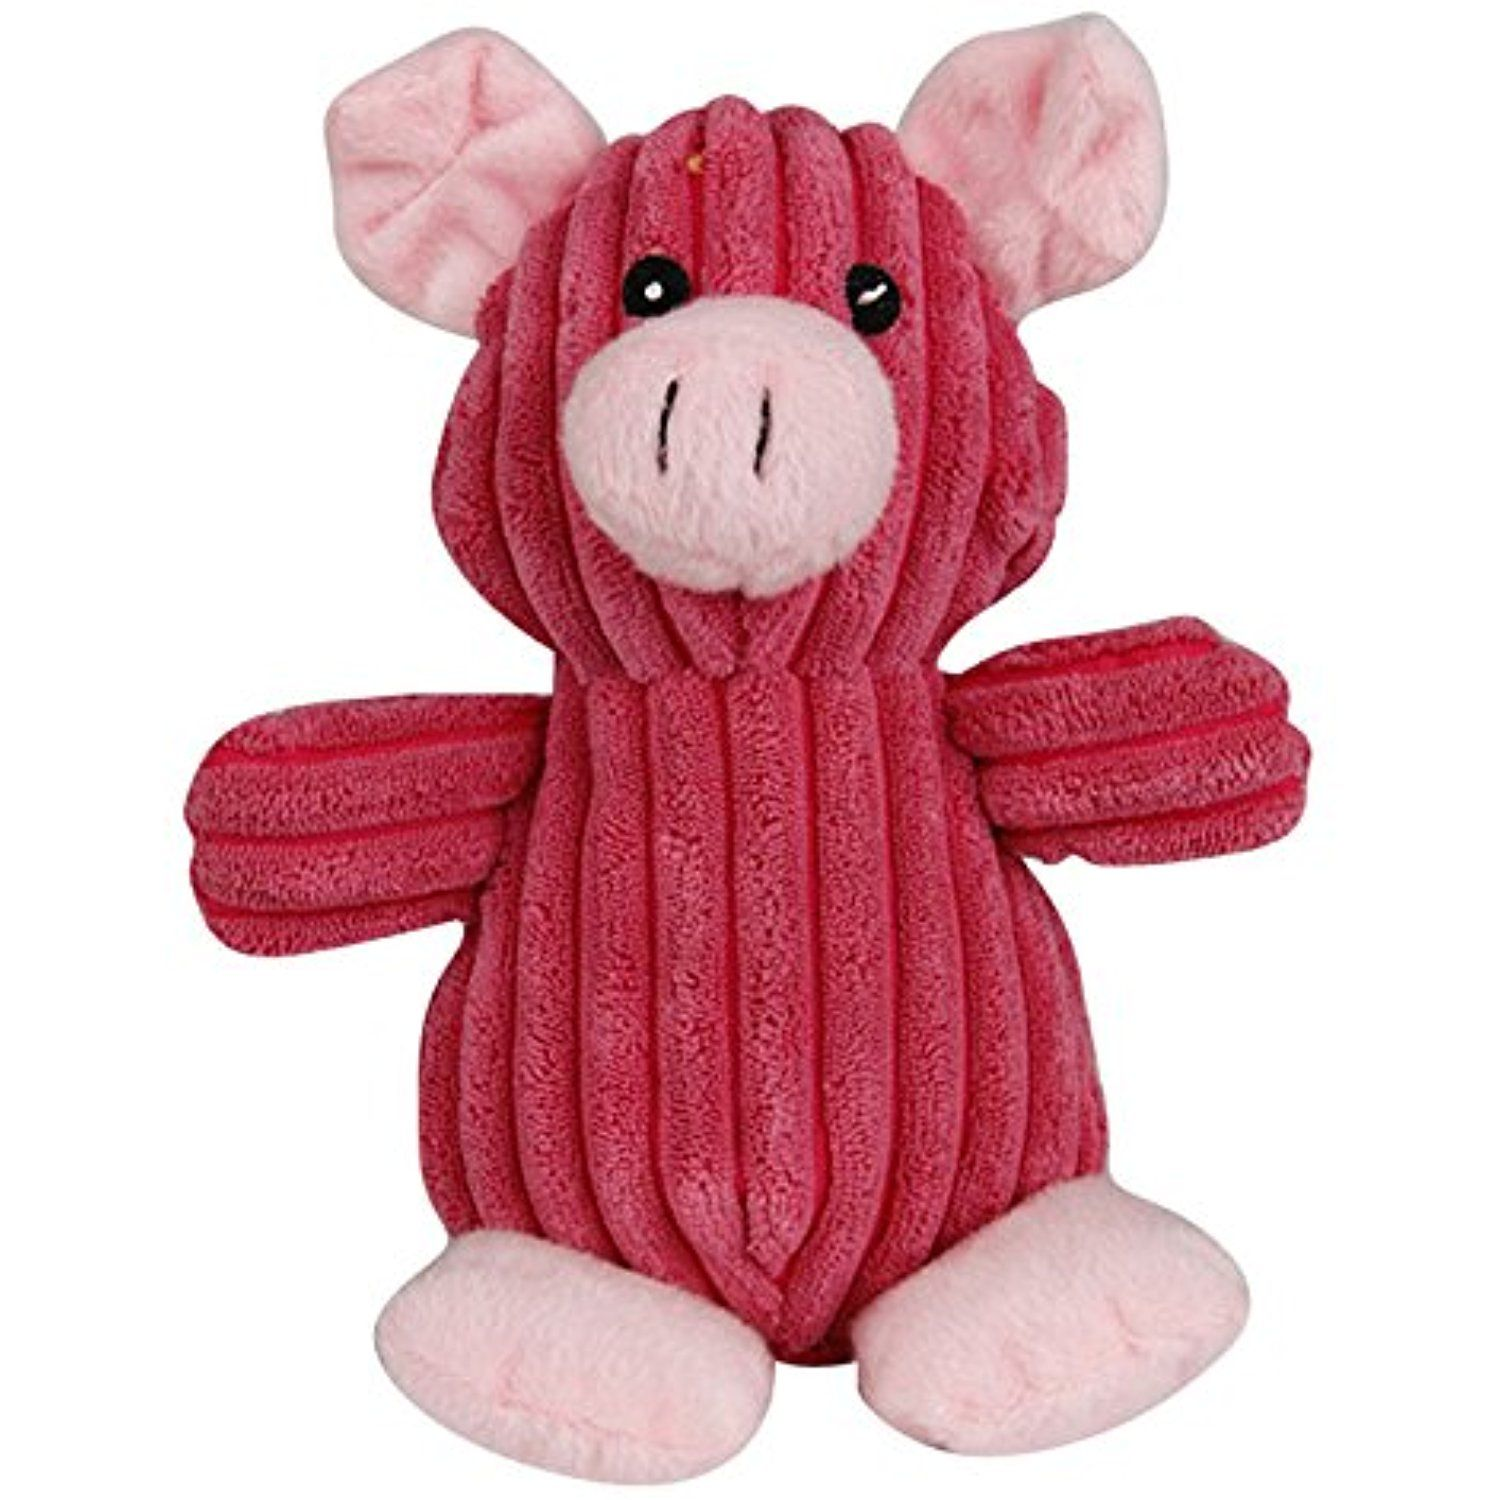 Dogloveit Corduroy Animal Pig Shape Squeaky Dog Toy Pink 9 Inch